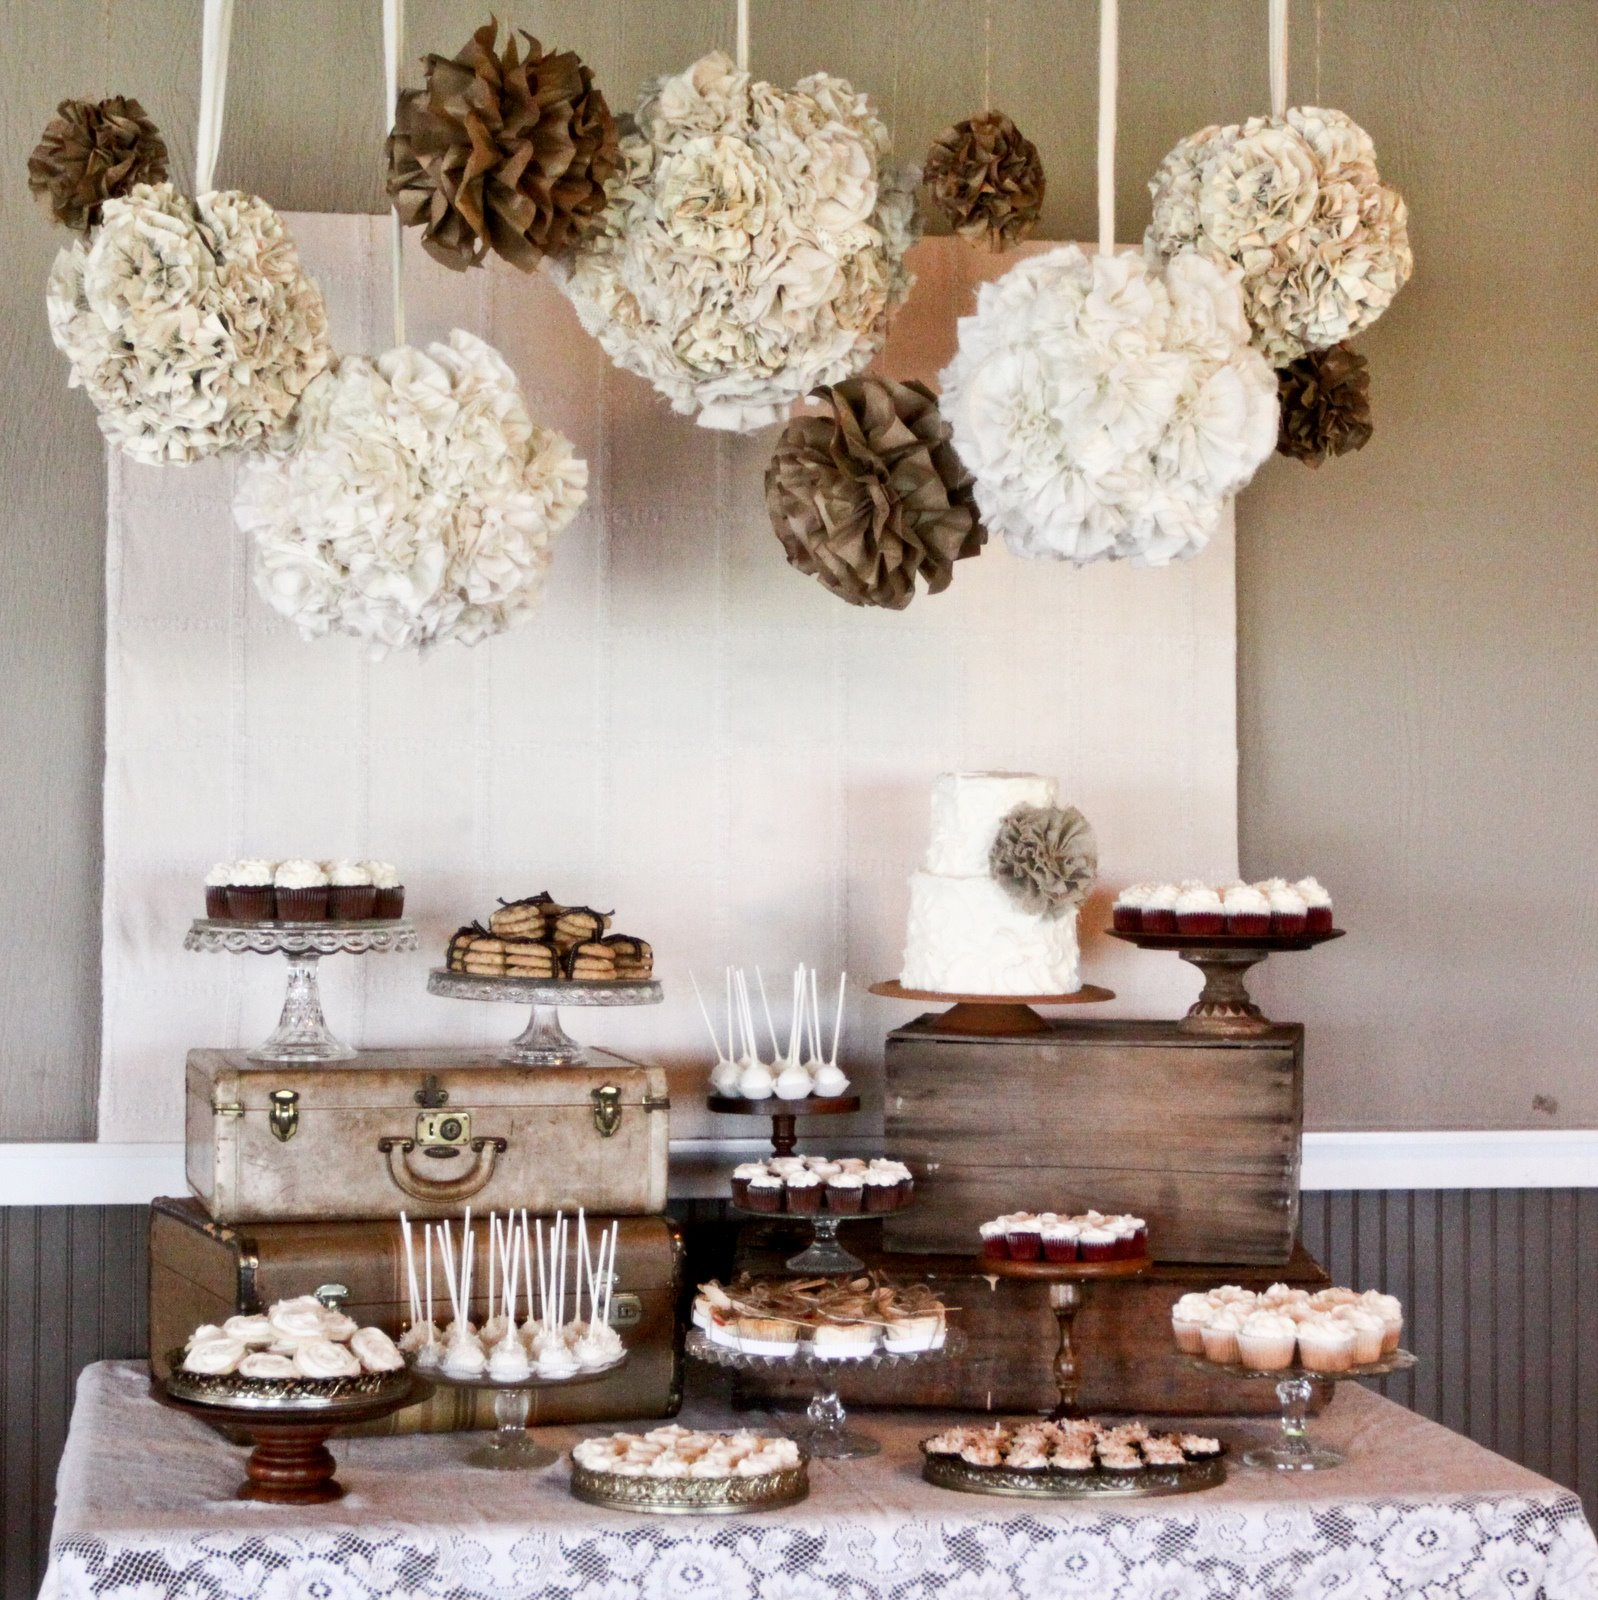 Organizitpartystyling Wedding Dessert Table Collection & Dessert Table Decorating Ideas - Elitflat